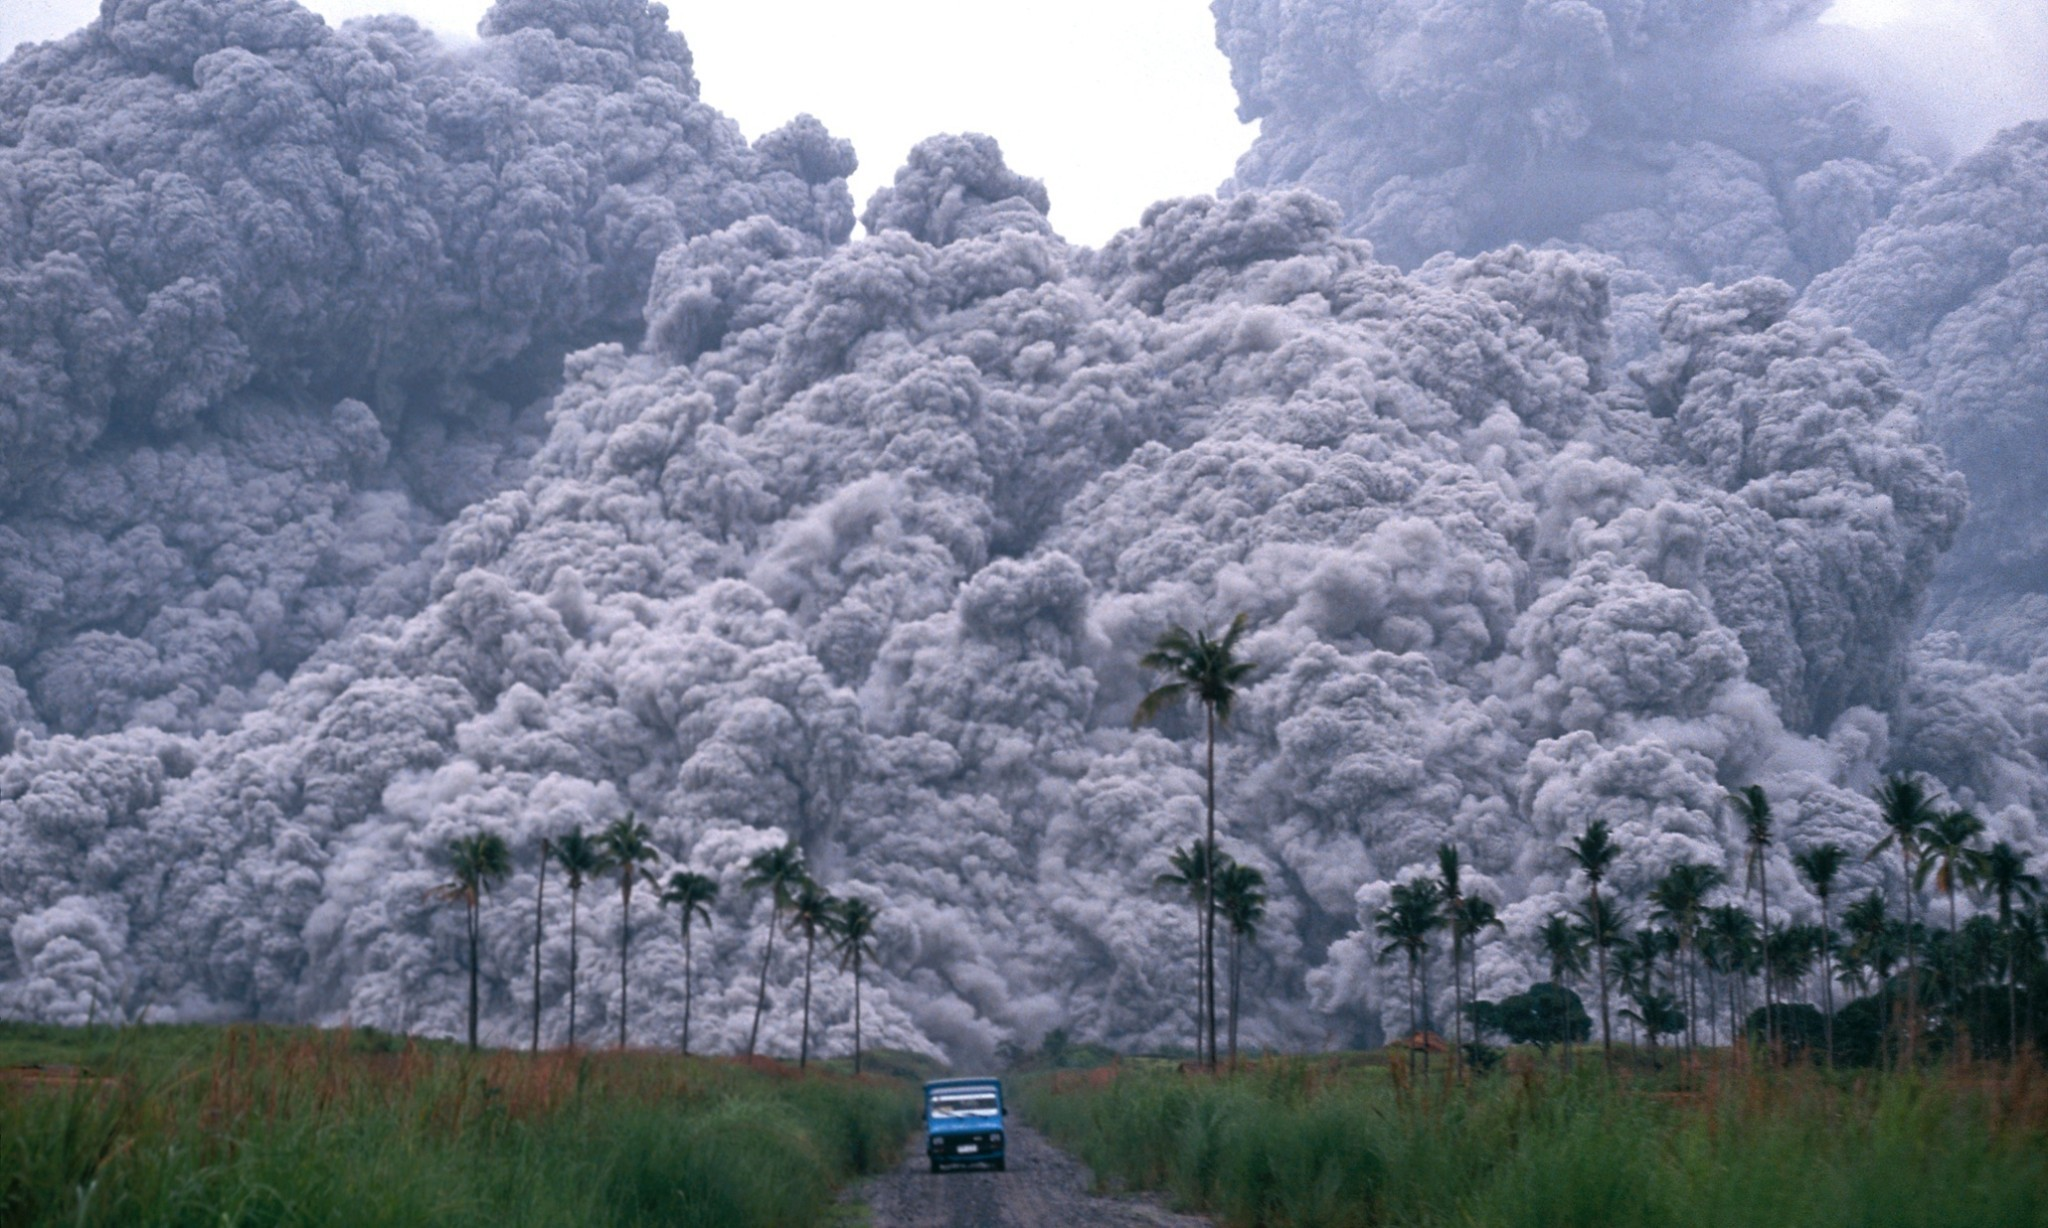 Geoengineering could prevent climate effects caused by giant volcanic eruptions